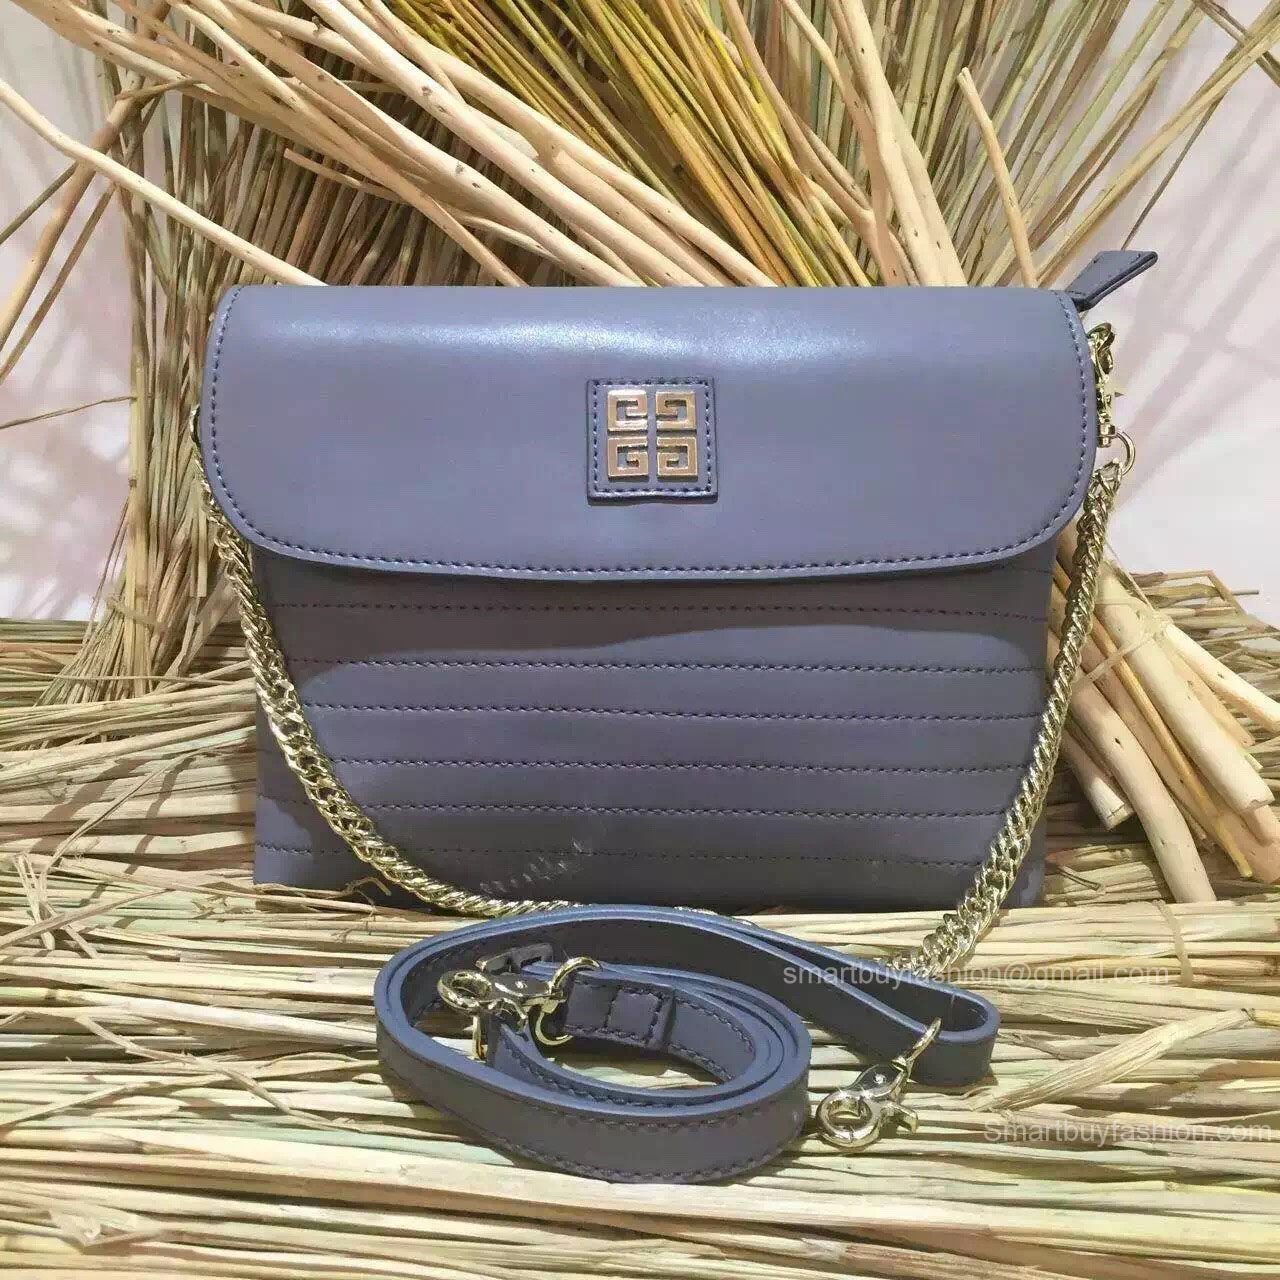 Givenchy Small Chain Flap Bag Grey 286140